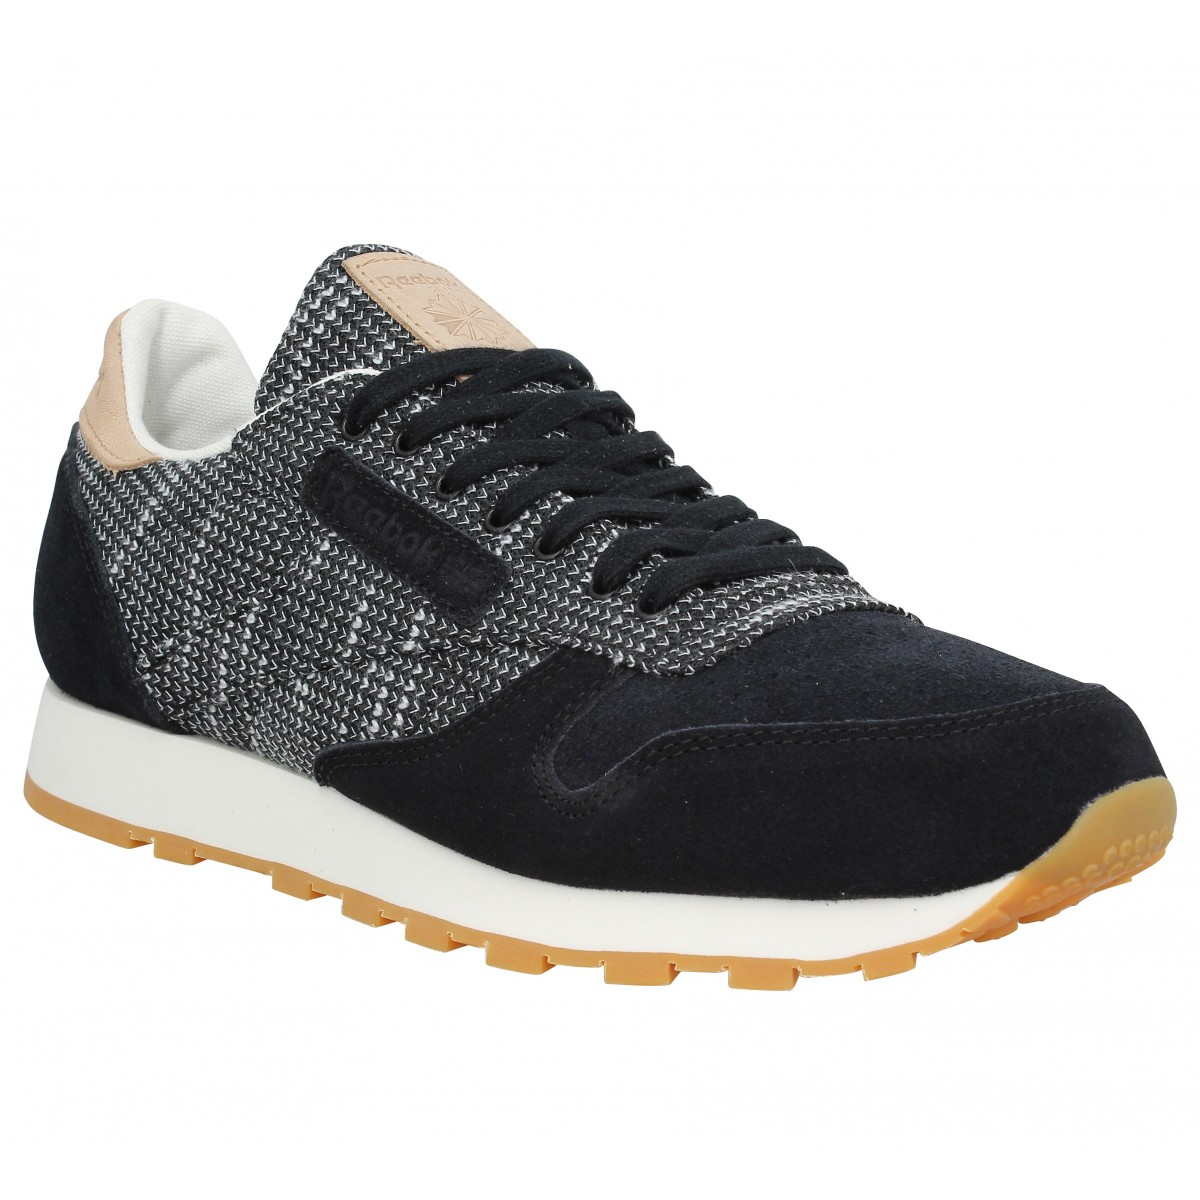 530f9e1774889 Baskets REEBOK Classic Leather velours toile Homme Noir